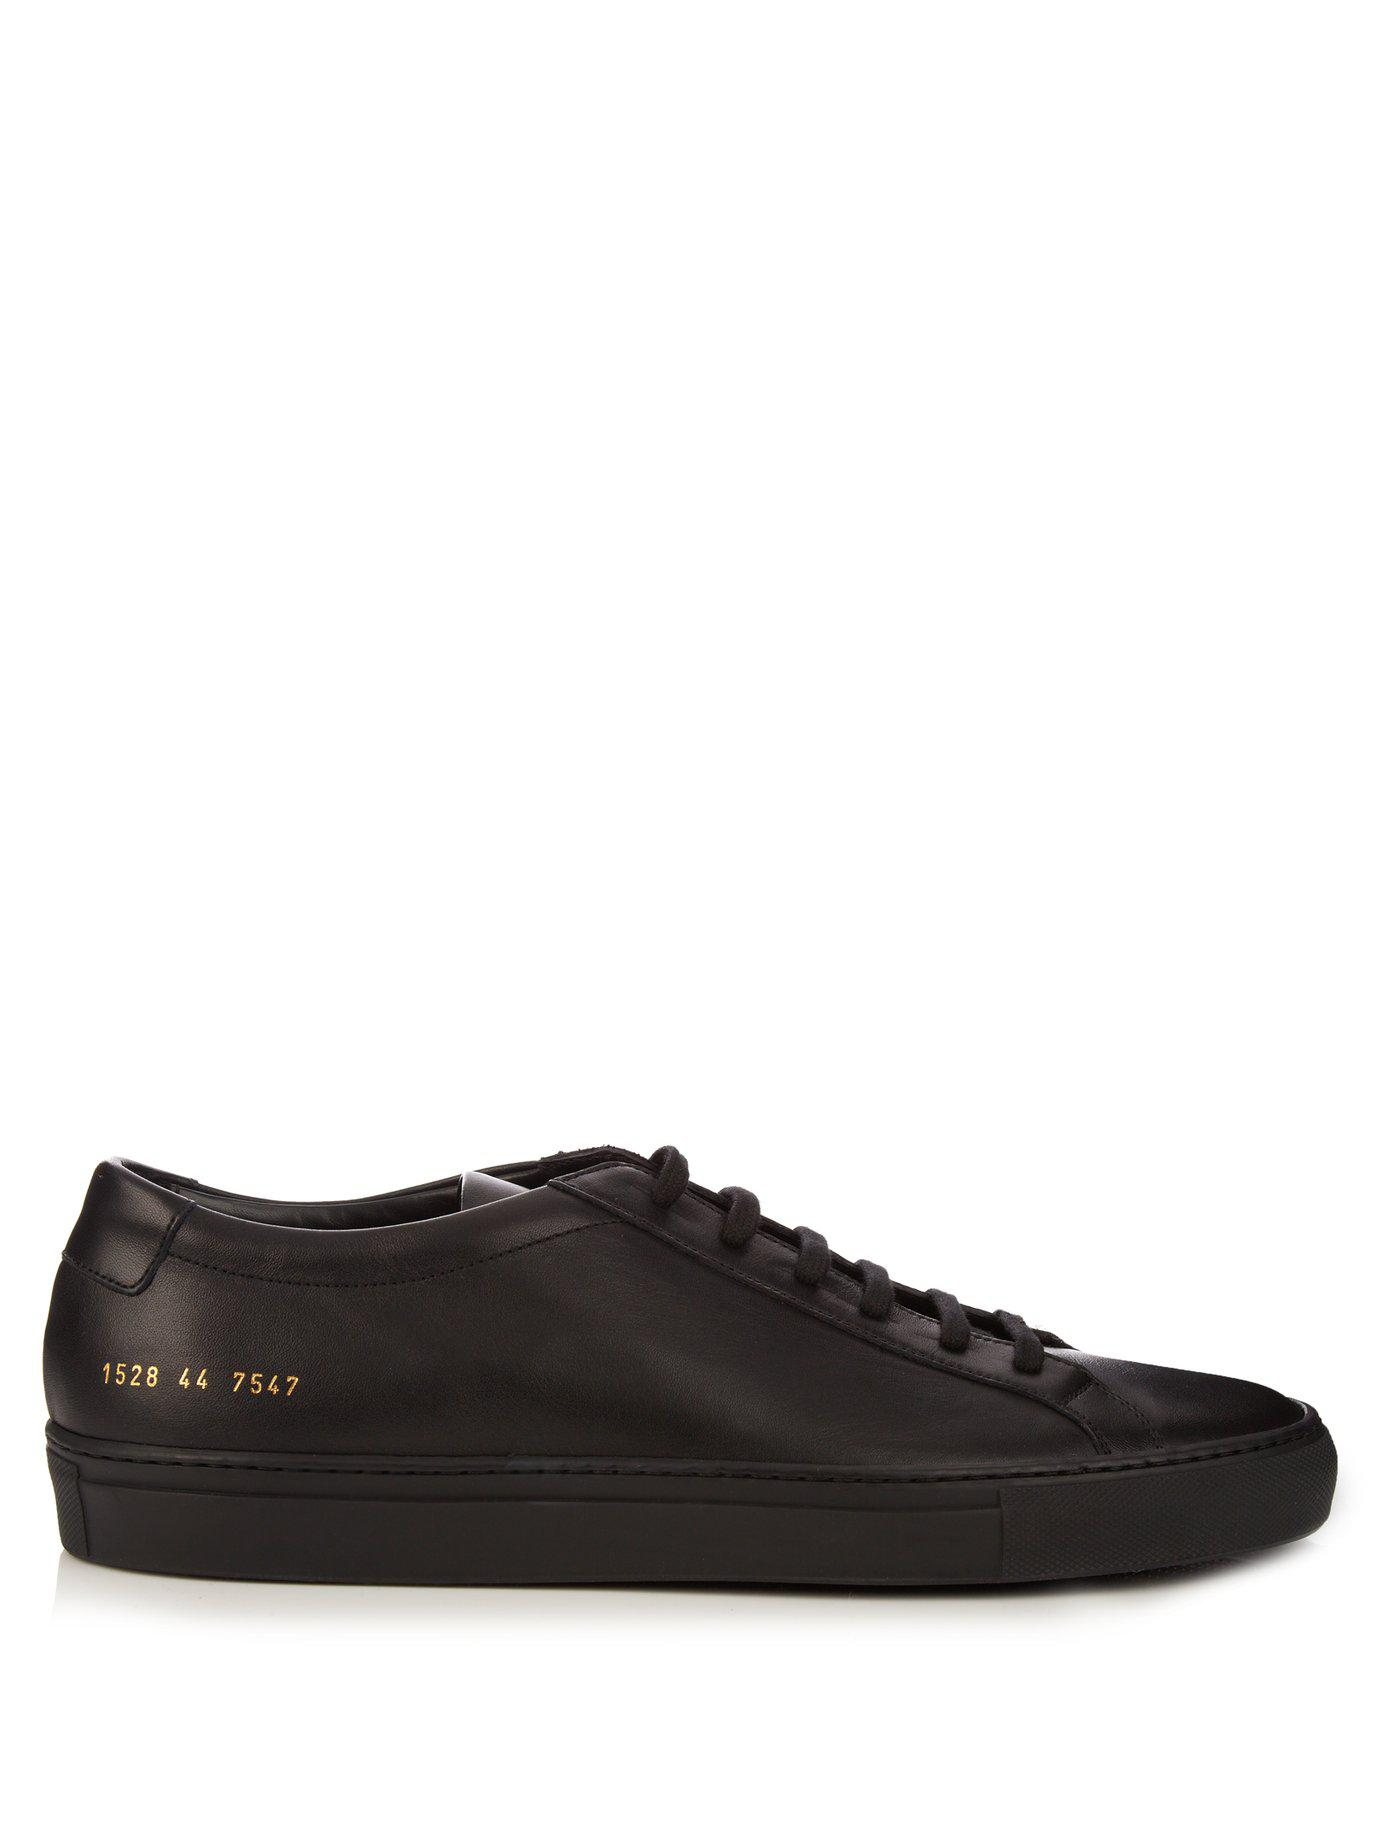 8bad31a841ed Lyst - Common Projects Black Leather Achilles Sneakers for Men